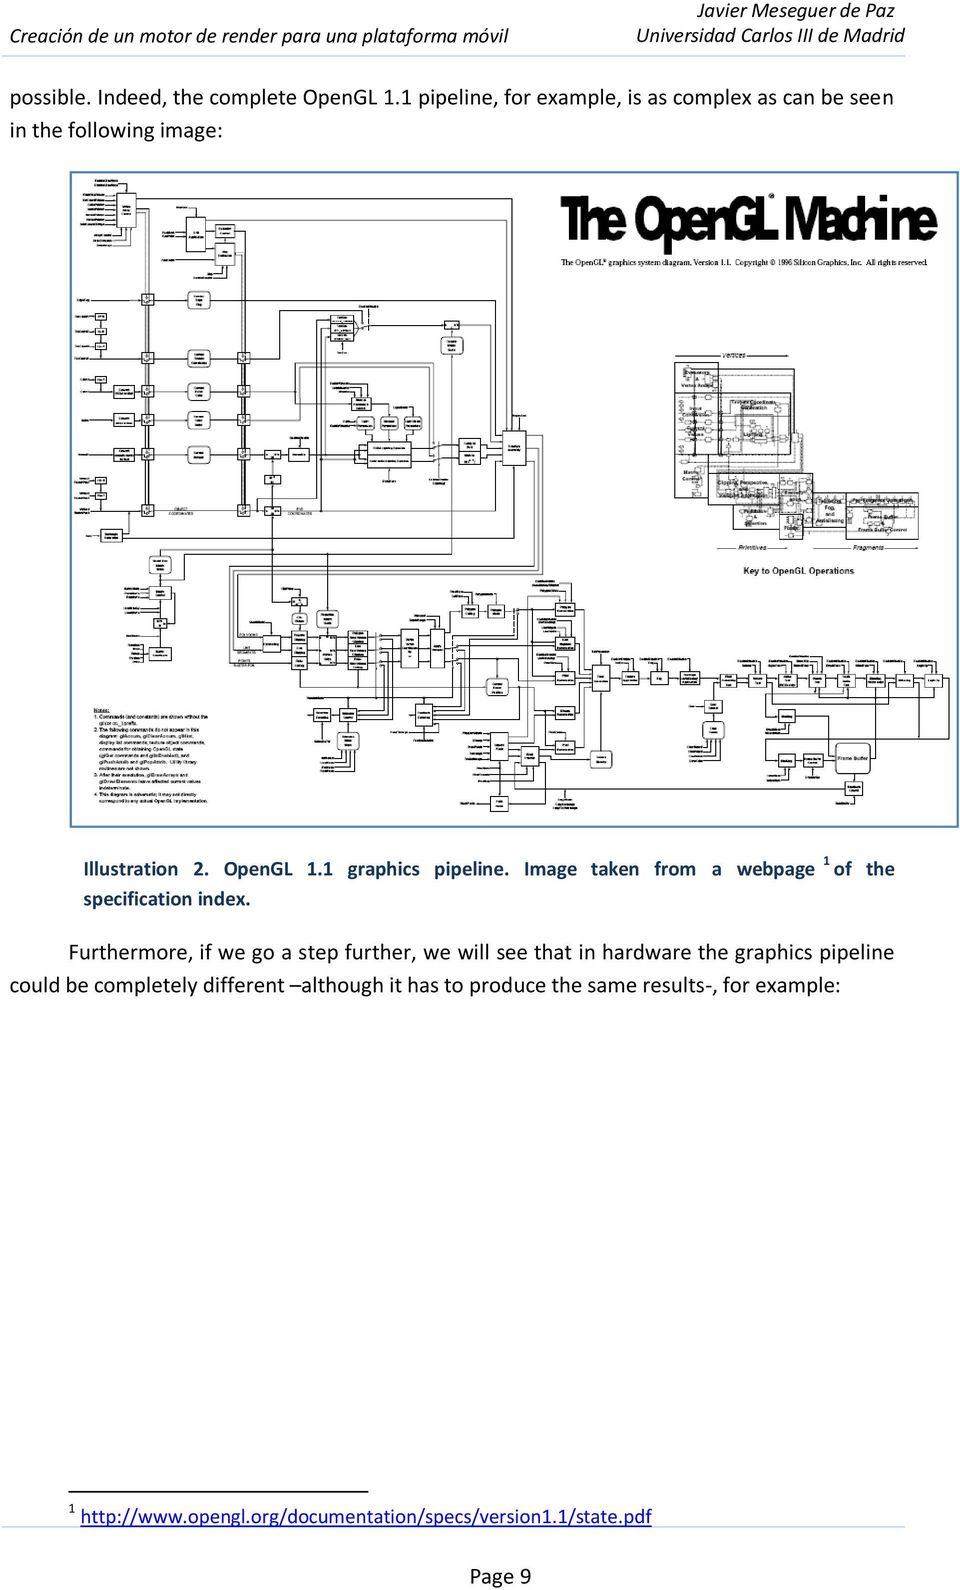 1 graphics pipeline. Image taken frm a webpage 1 f the specificatin index.